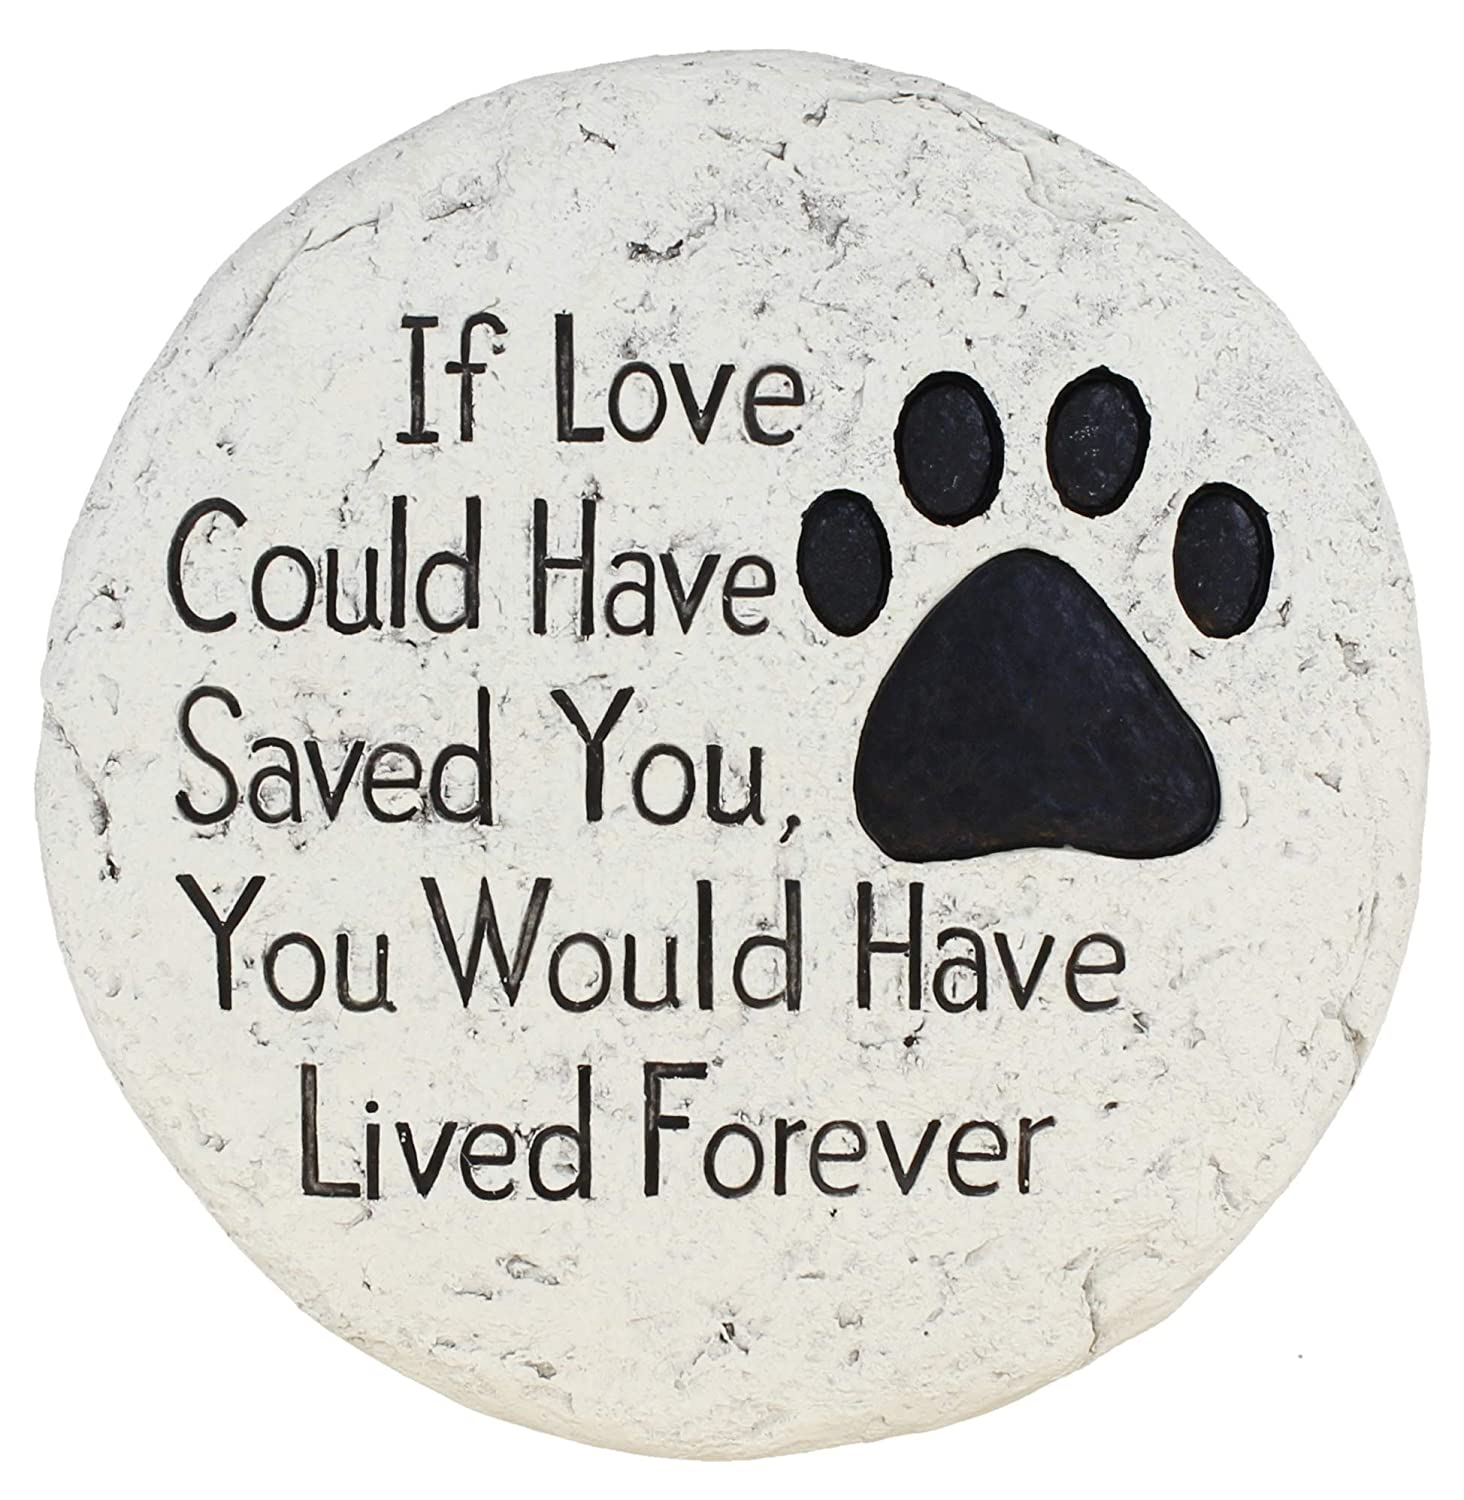 Old River Outdoors Pet Memorial Stone - If Love Could Have Saved You Paw Print Garden Stepping Stone